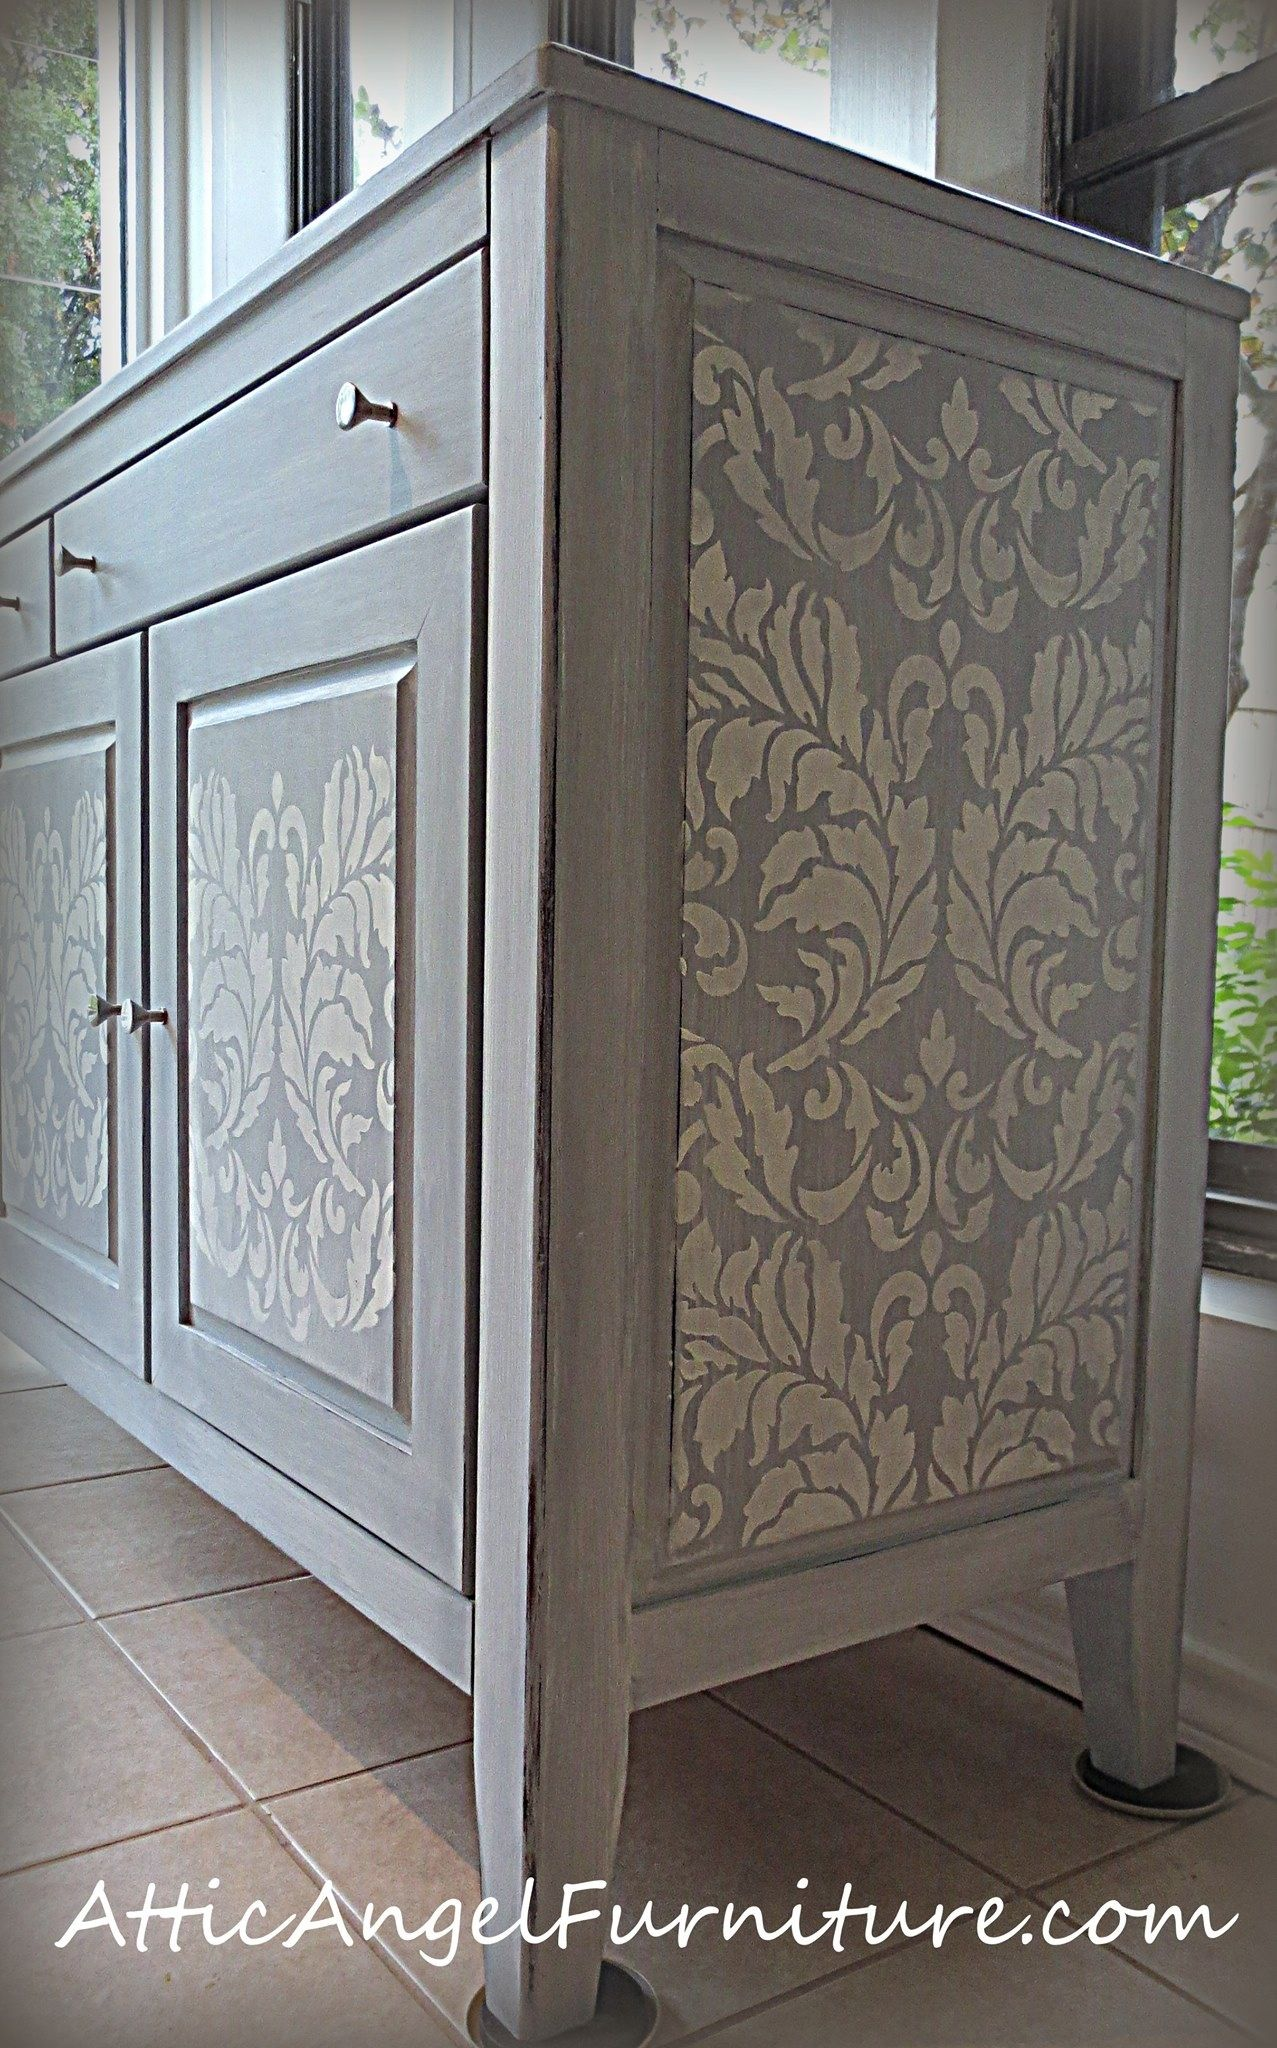 Httpatticangelfurnitureportfolio furniture re dos find this pin and more on furniture re dos why damask patterns make delicious wall stencils amipublicfo Image collections